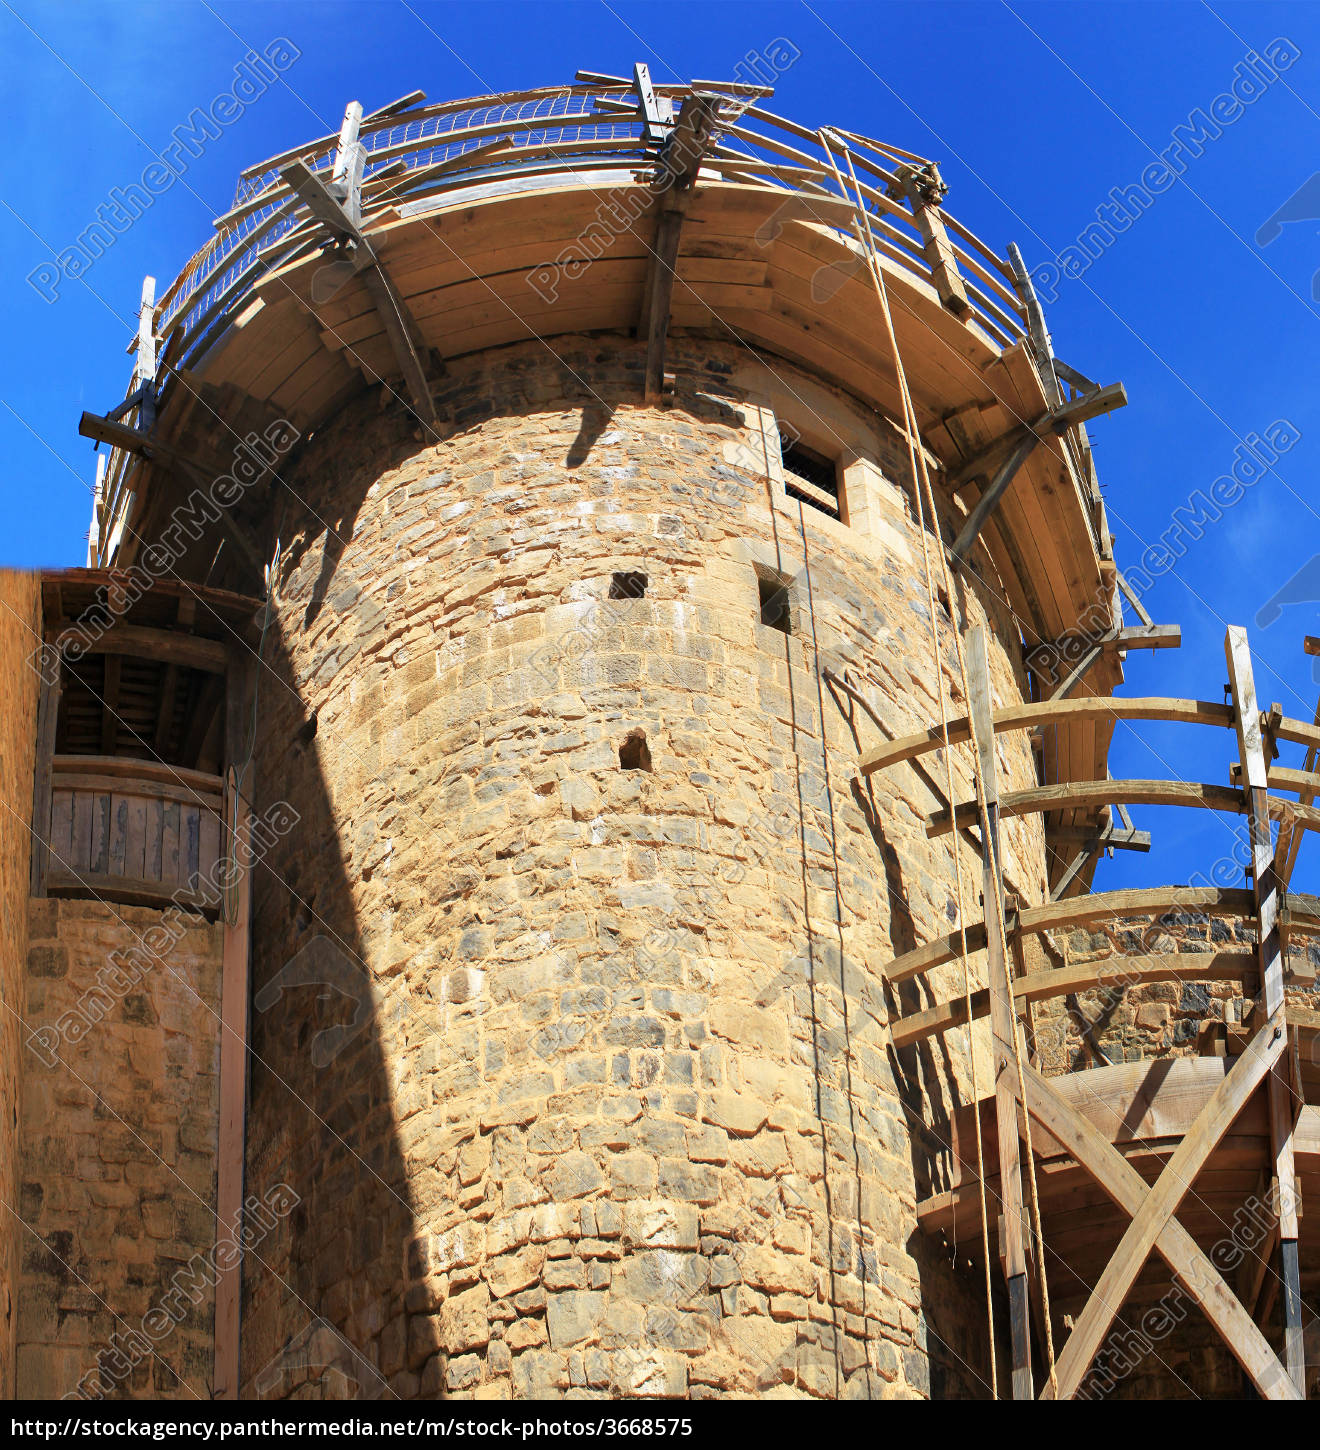 tower, construction - 3668575